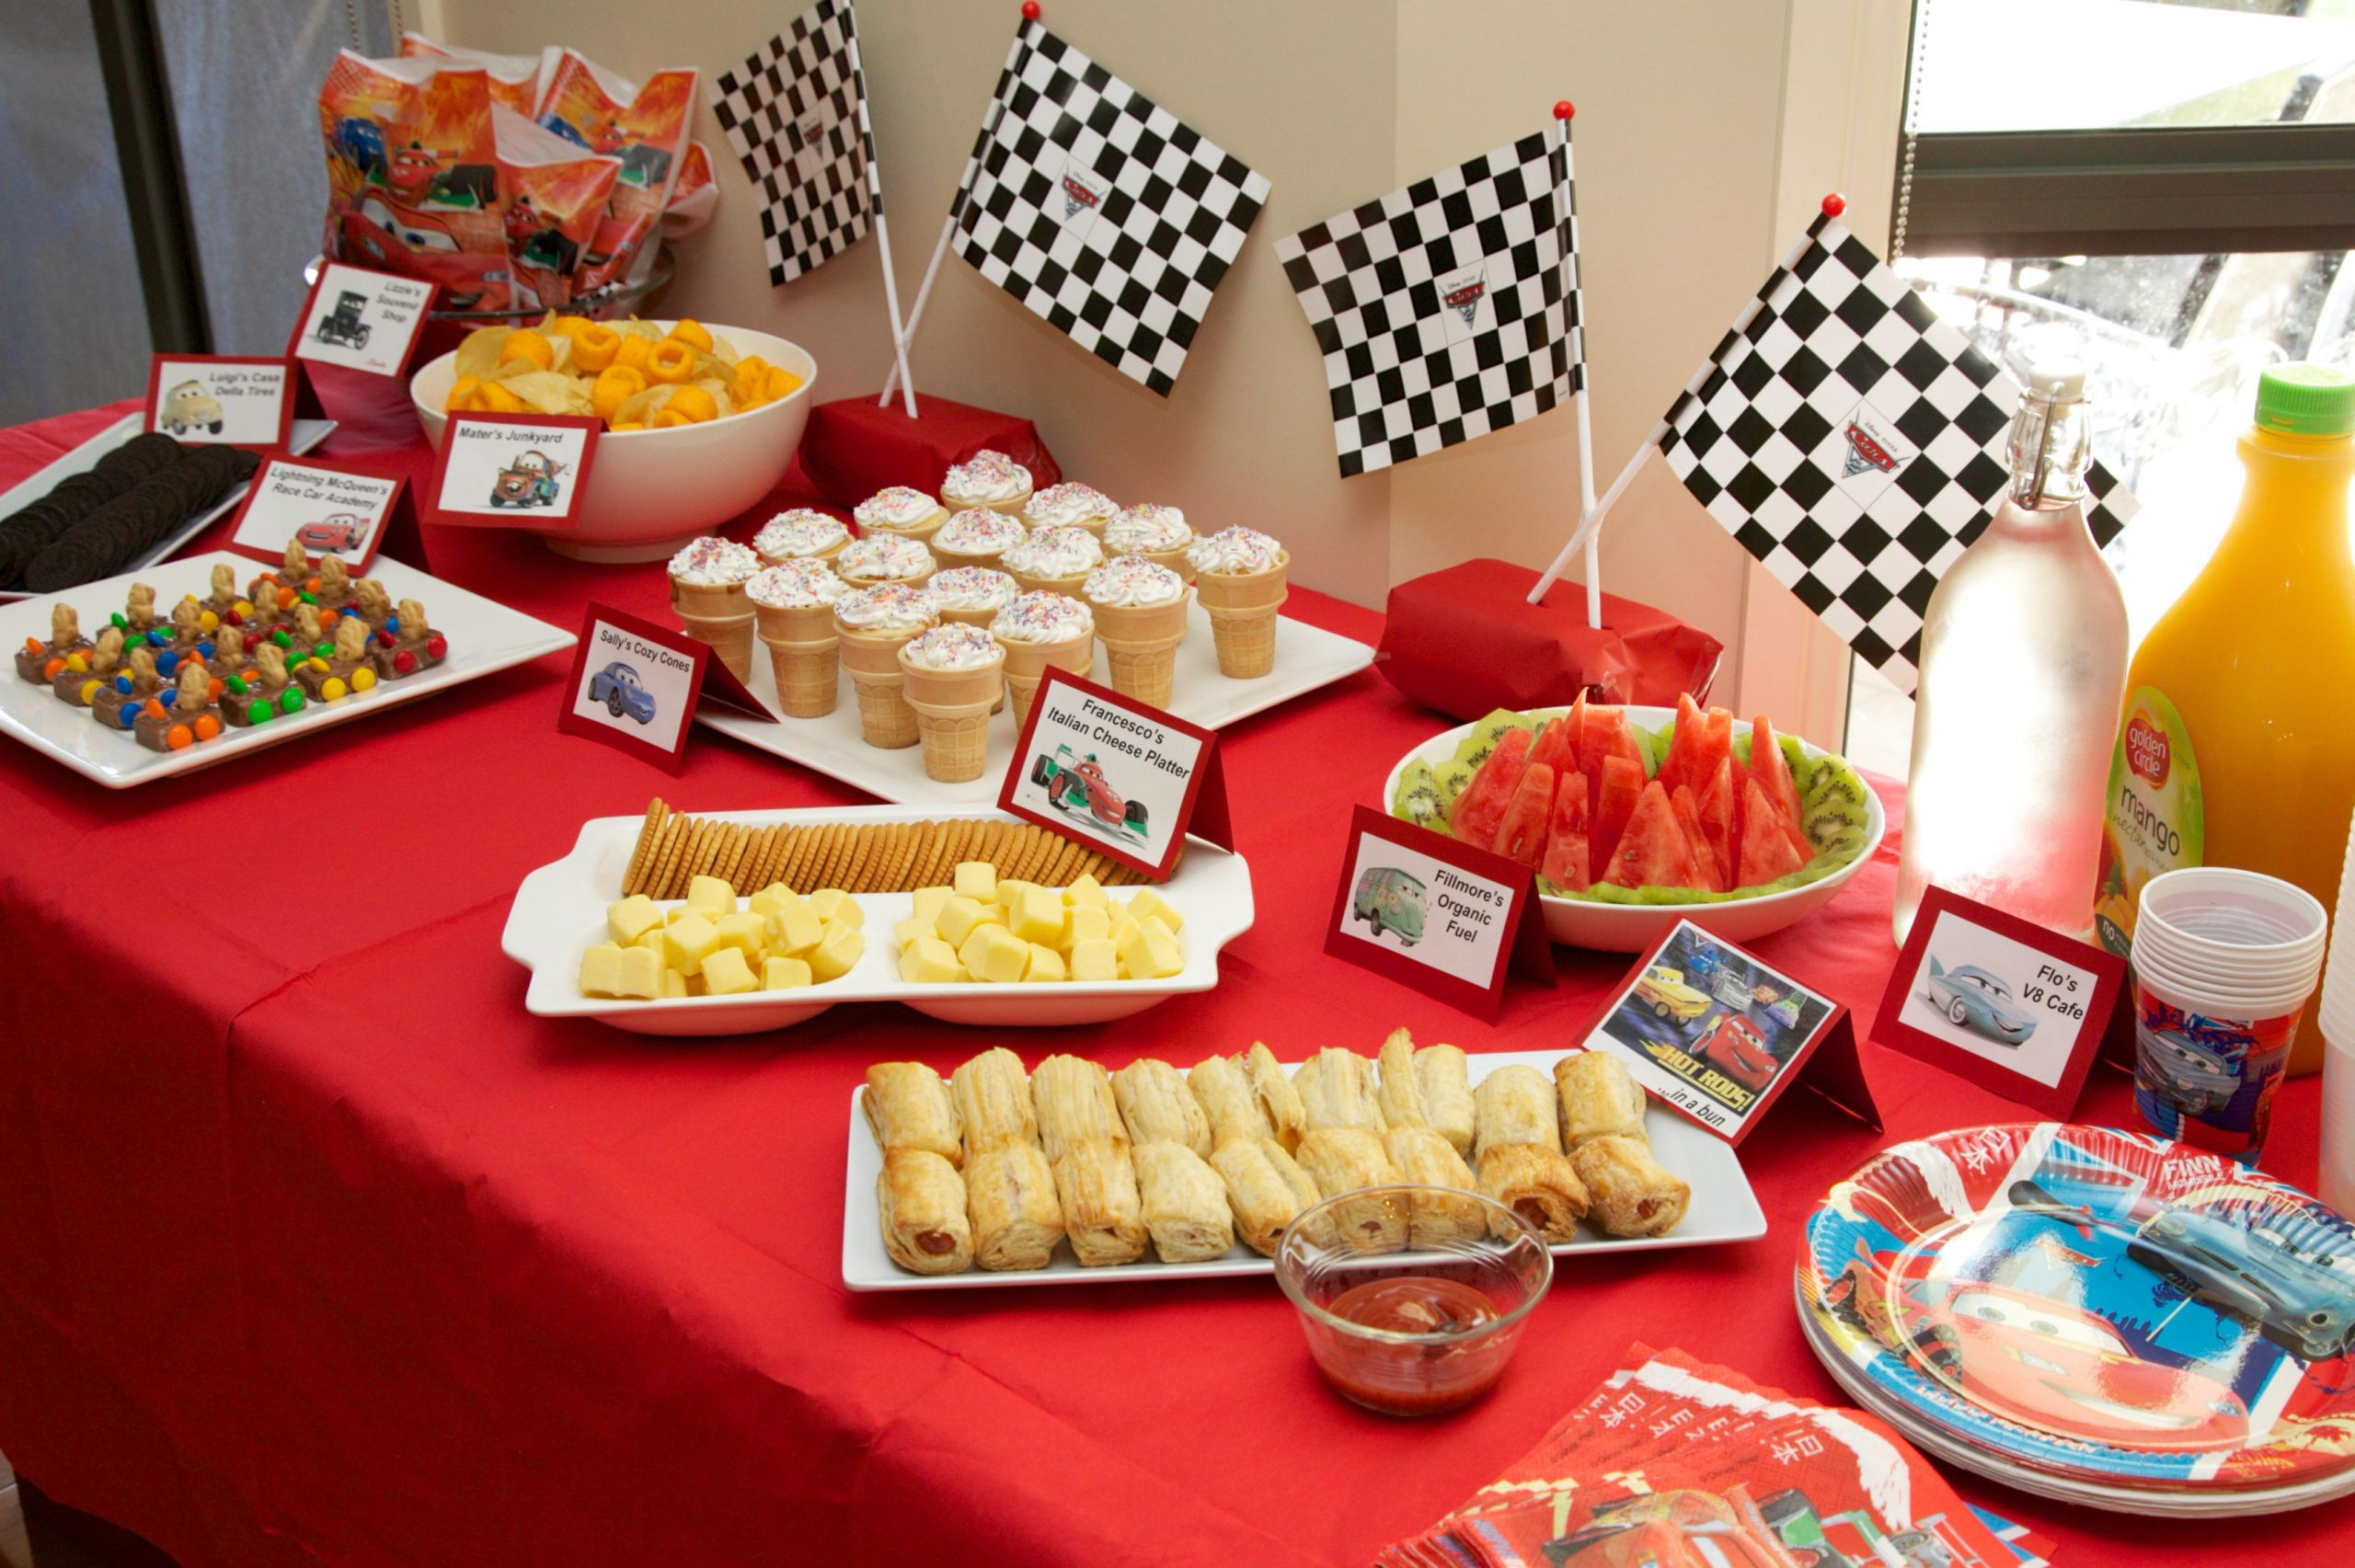 Children Birthday Party Food Ideas  How to throw a BIG kids birthday party on a small bud